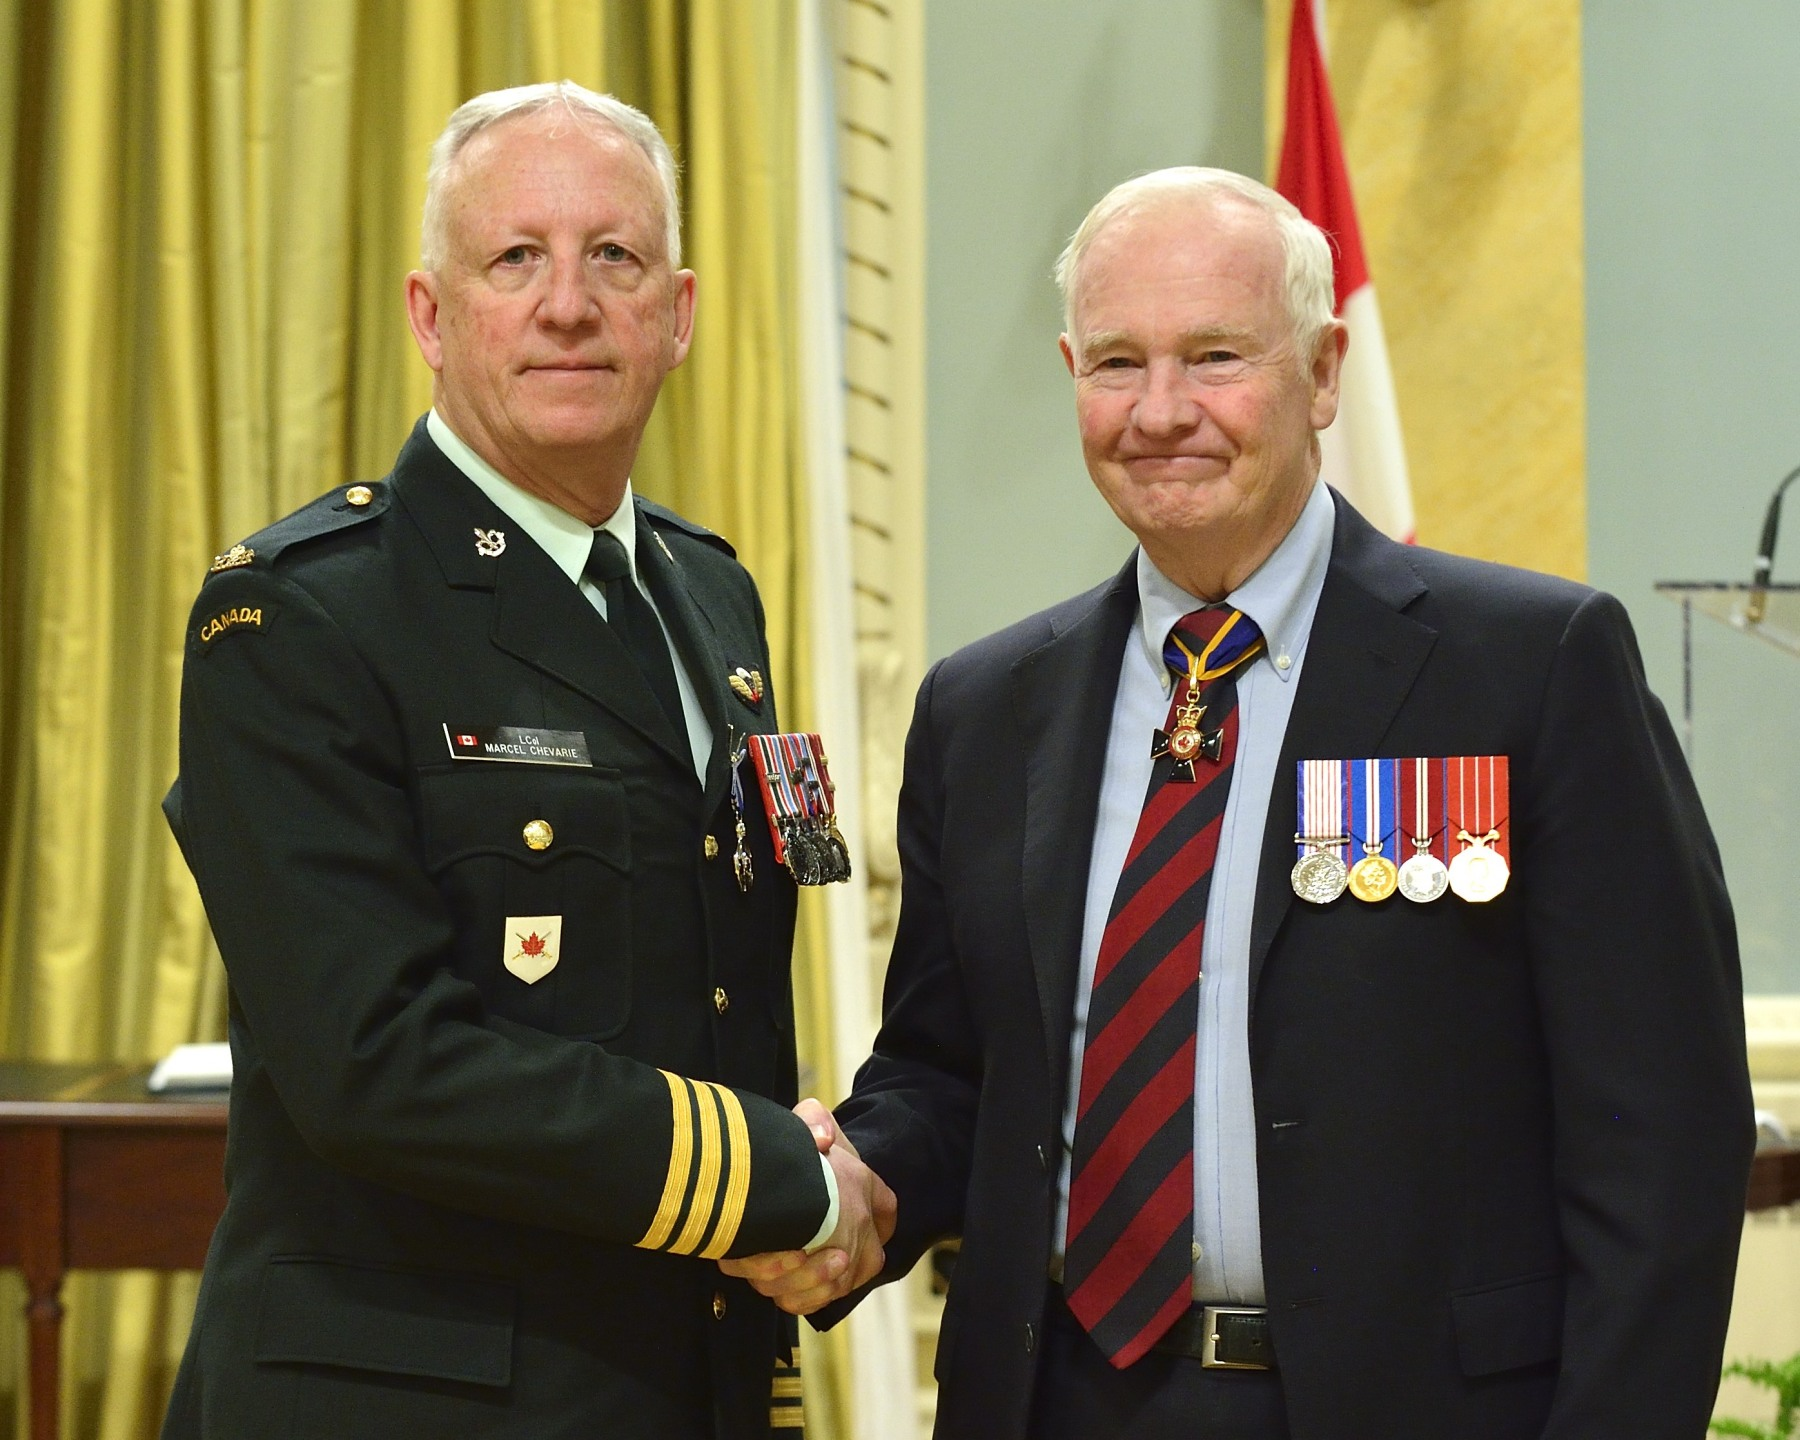 Lieutenant-Colonel Joseph Marcel Edmond Chevarie, M.S.M., C.D. (Cap-aux-Meules, Les Îles-de-la-Madeleine, Quebec) received the Meritorious Service Medal. As the commander of the 2nd Canadian Ranger Patrol Group since January 2010, Lieutenant-Colonel Chevarie distinguished himself through his unwavering promotion of the development, training and contribution of the Canadian Rangers, particularly the Junior Canadian Rangers. His vision and forward thinking helped the Canadian Rangers play a leading-edge role and enhanced their operational status, enabling them to perform their duties more effectively.